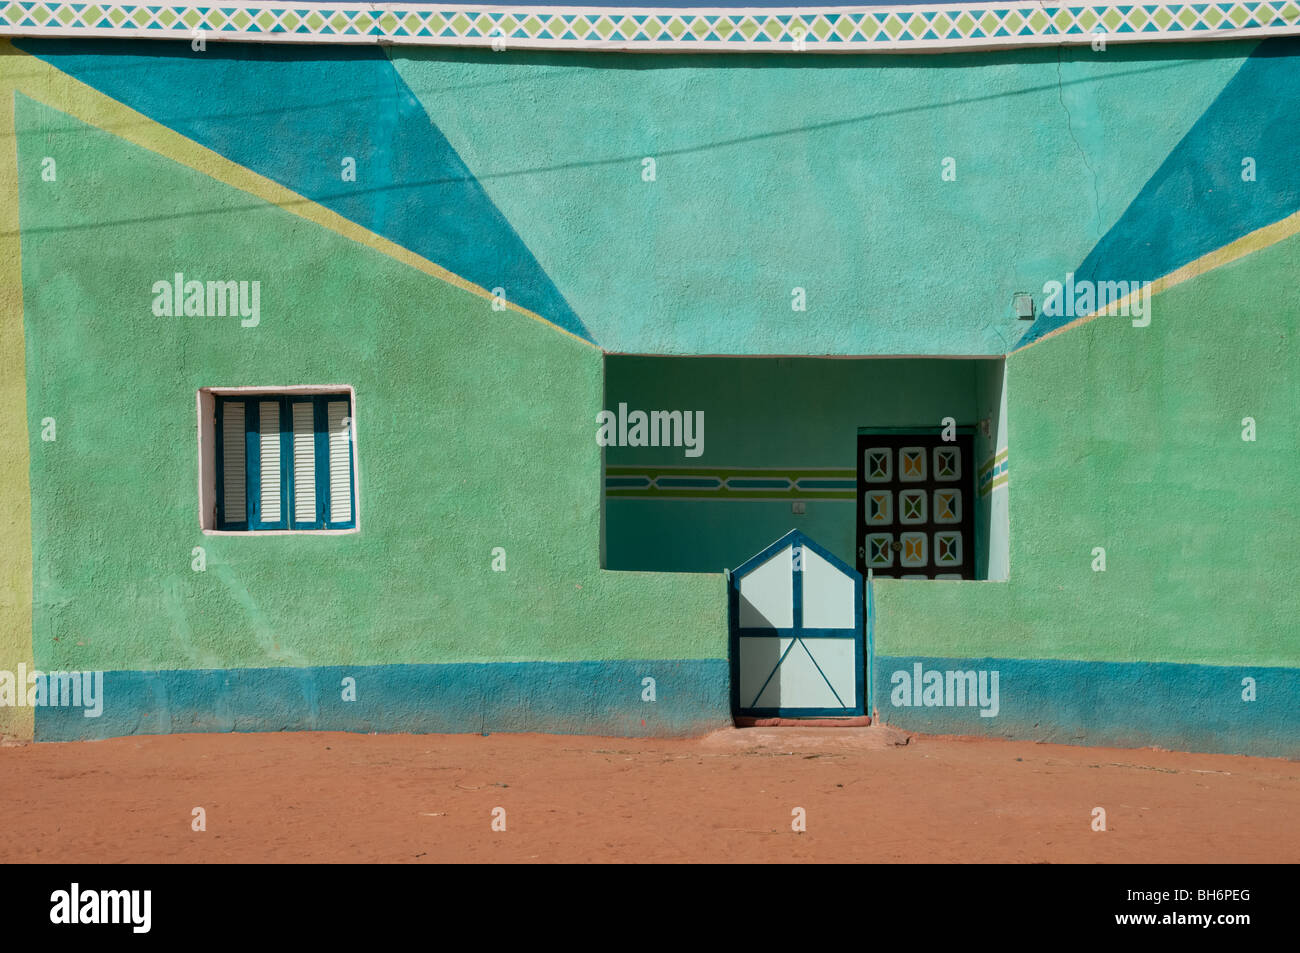 A small colorful house in the Saharan village of Balat in the Western Desert of the Sahara, Dakhla Oasis, New Valley - Stock Image